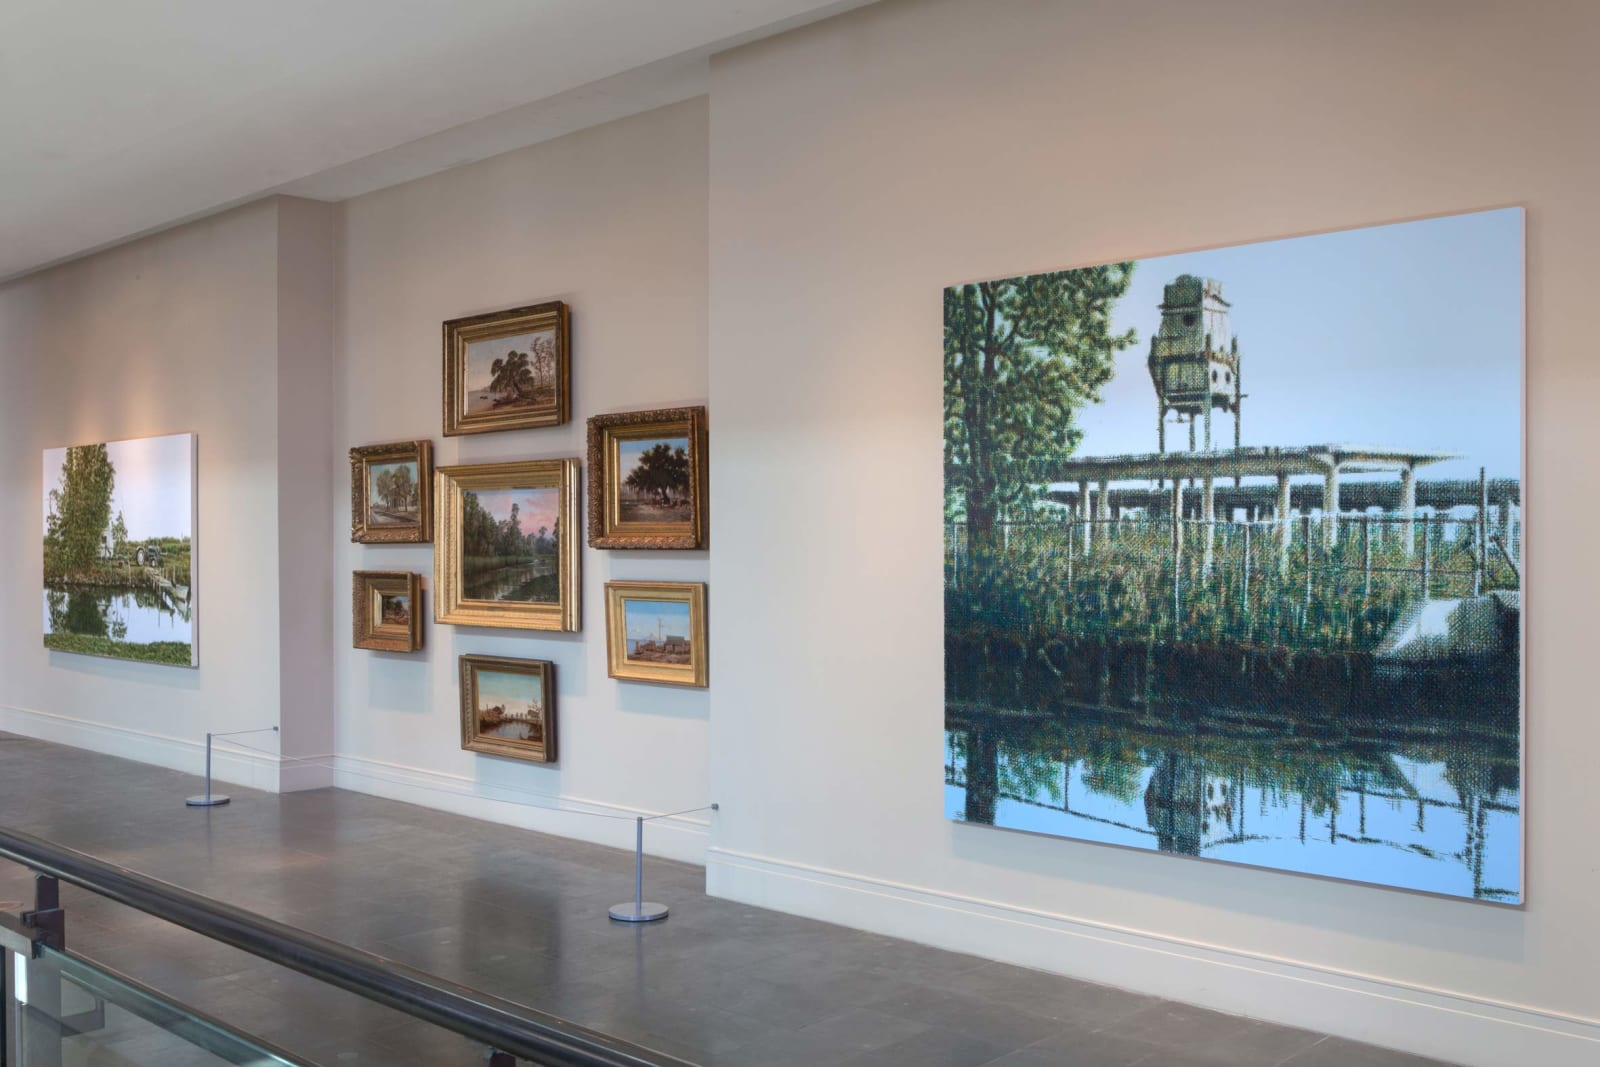 <p>Installation view: 'Prospect. 4: The Lotus in Spite of the Swamp', Prospect Triennial, New Orleans, LA (2017-2018).</p>